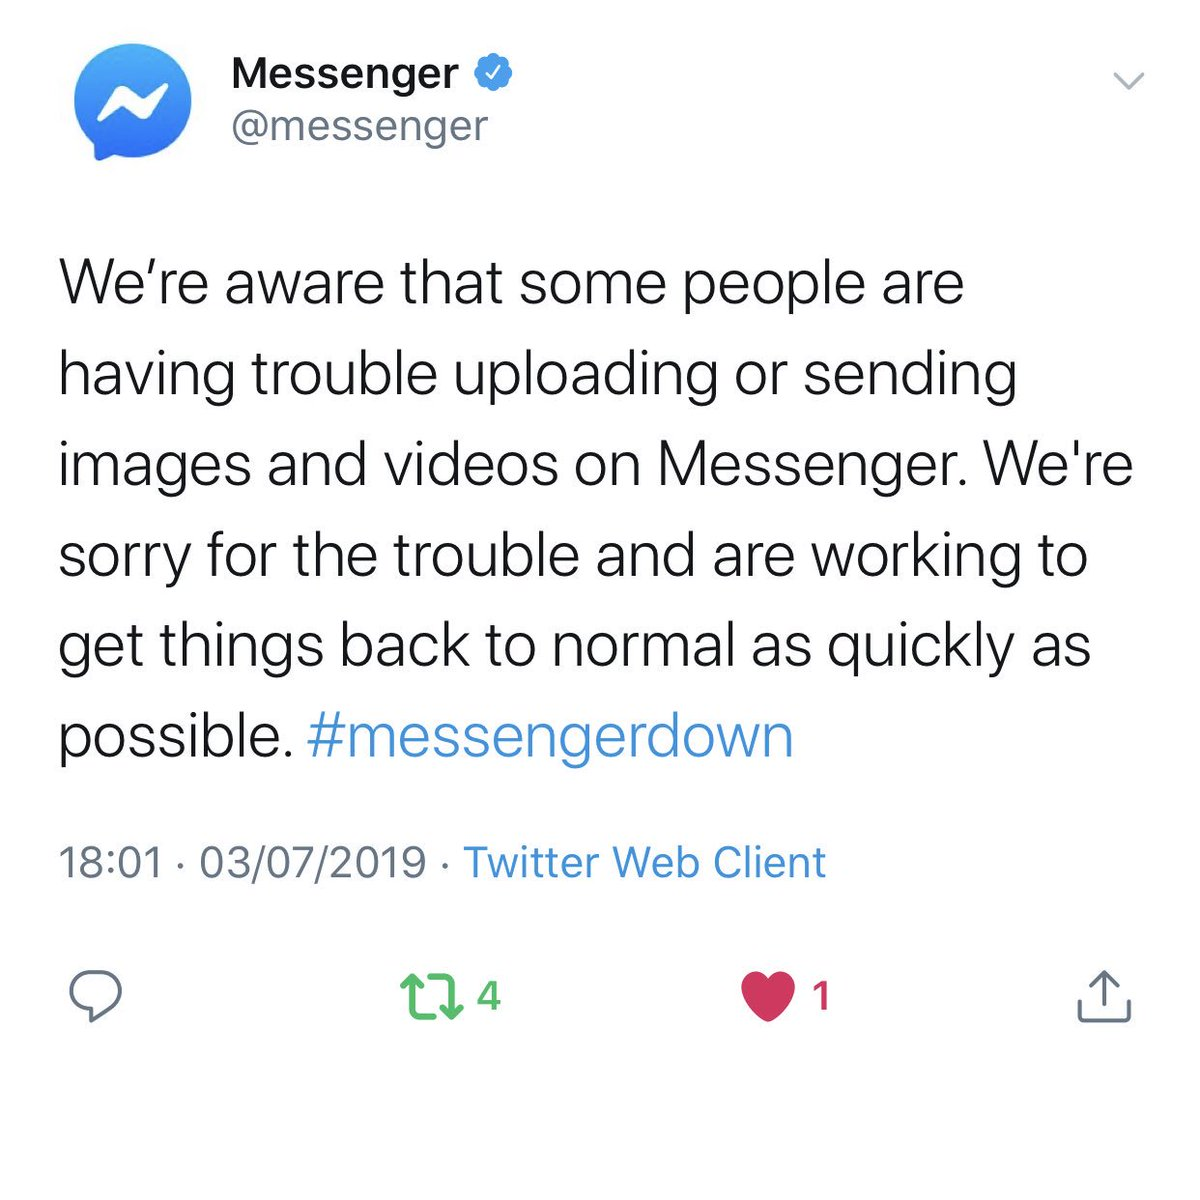 Facebook, Instagram and WhatsApp hit by media messaging